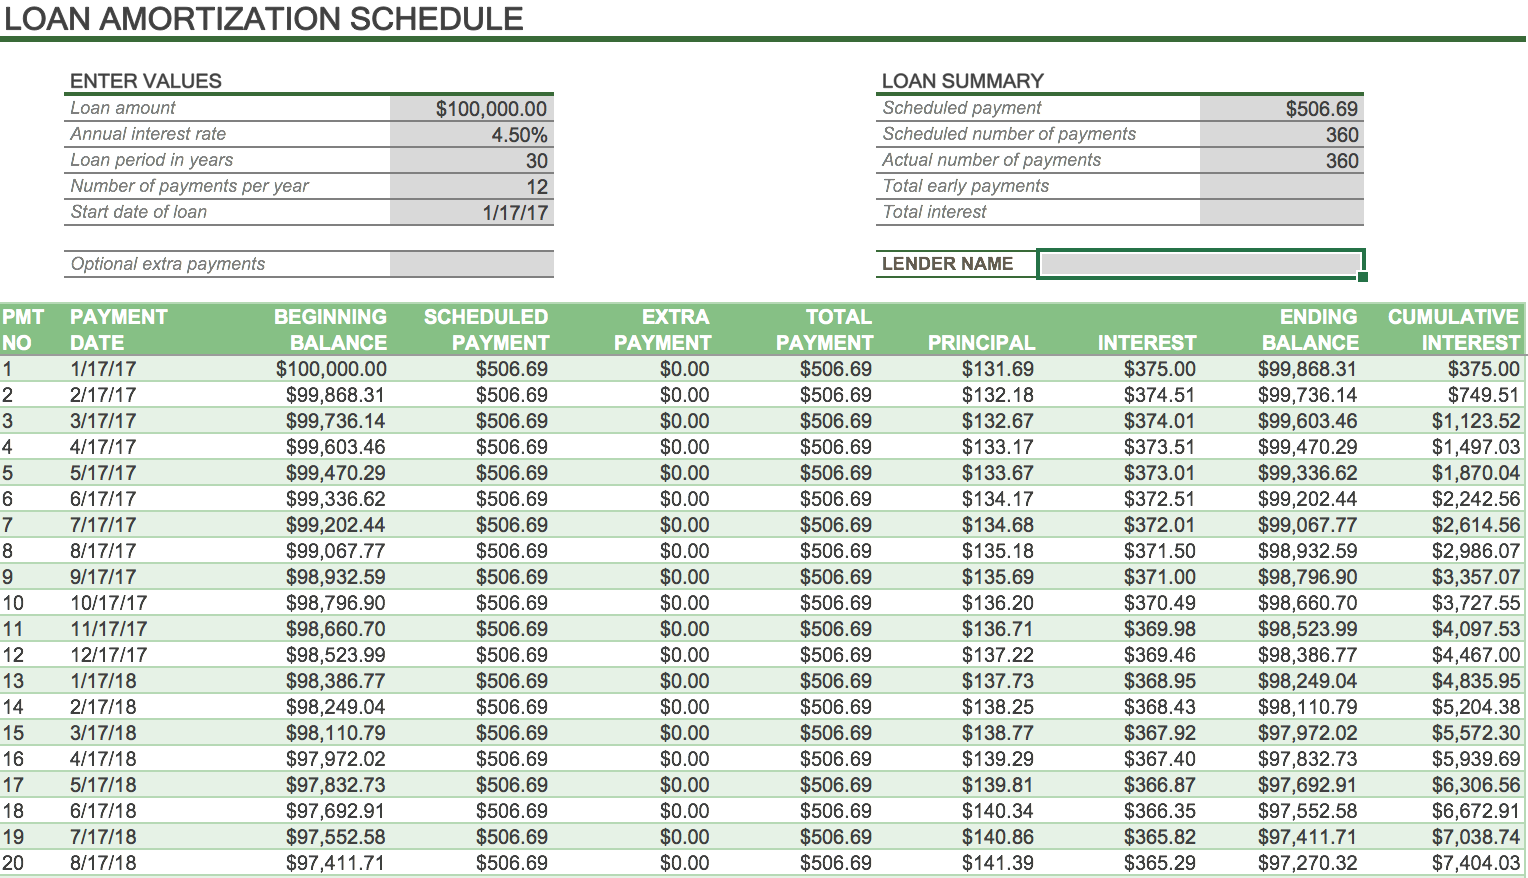 Blank Mortgage Amortization Schedule Excel Template With Extra Payments To Mortgage Amortization Schedule Excel Template With Extra Payments Letter